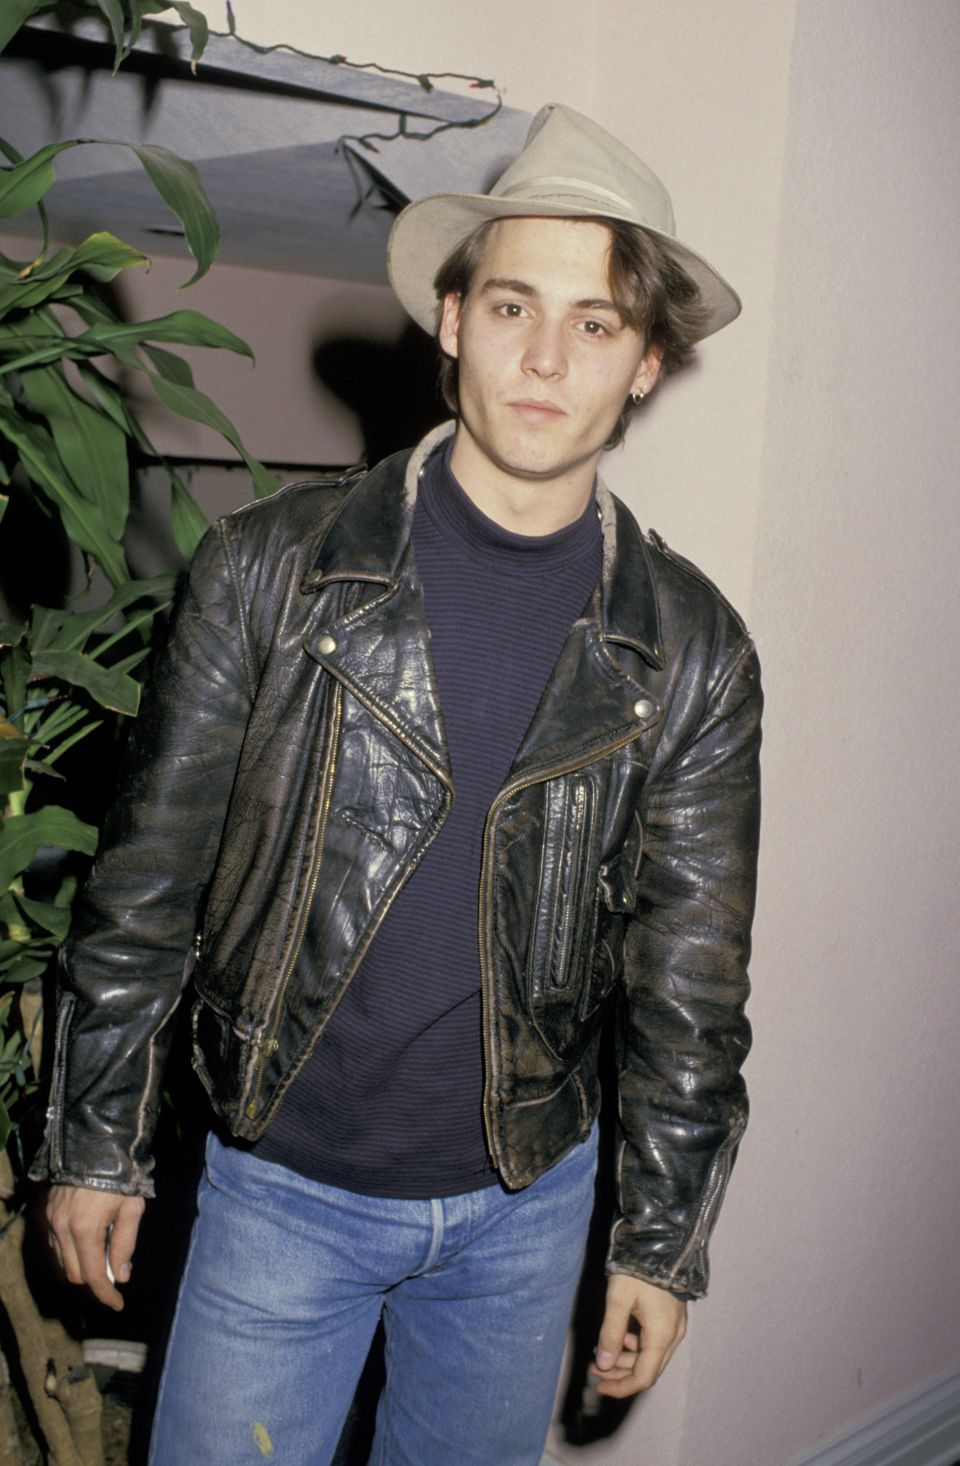 Johnny Depp (pictured here in 1987) was married to makeup artist Allison (not pictured) from 1983 to 1985.